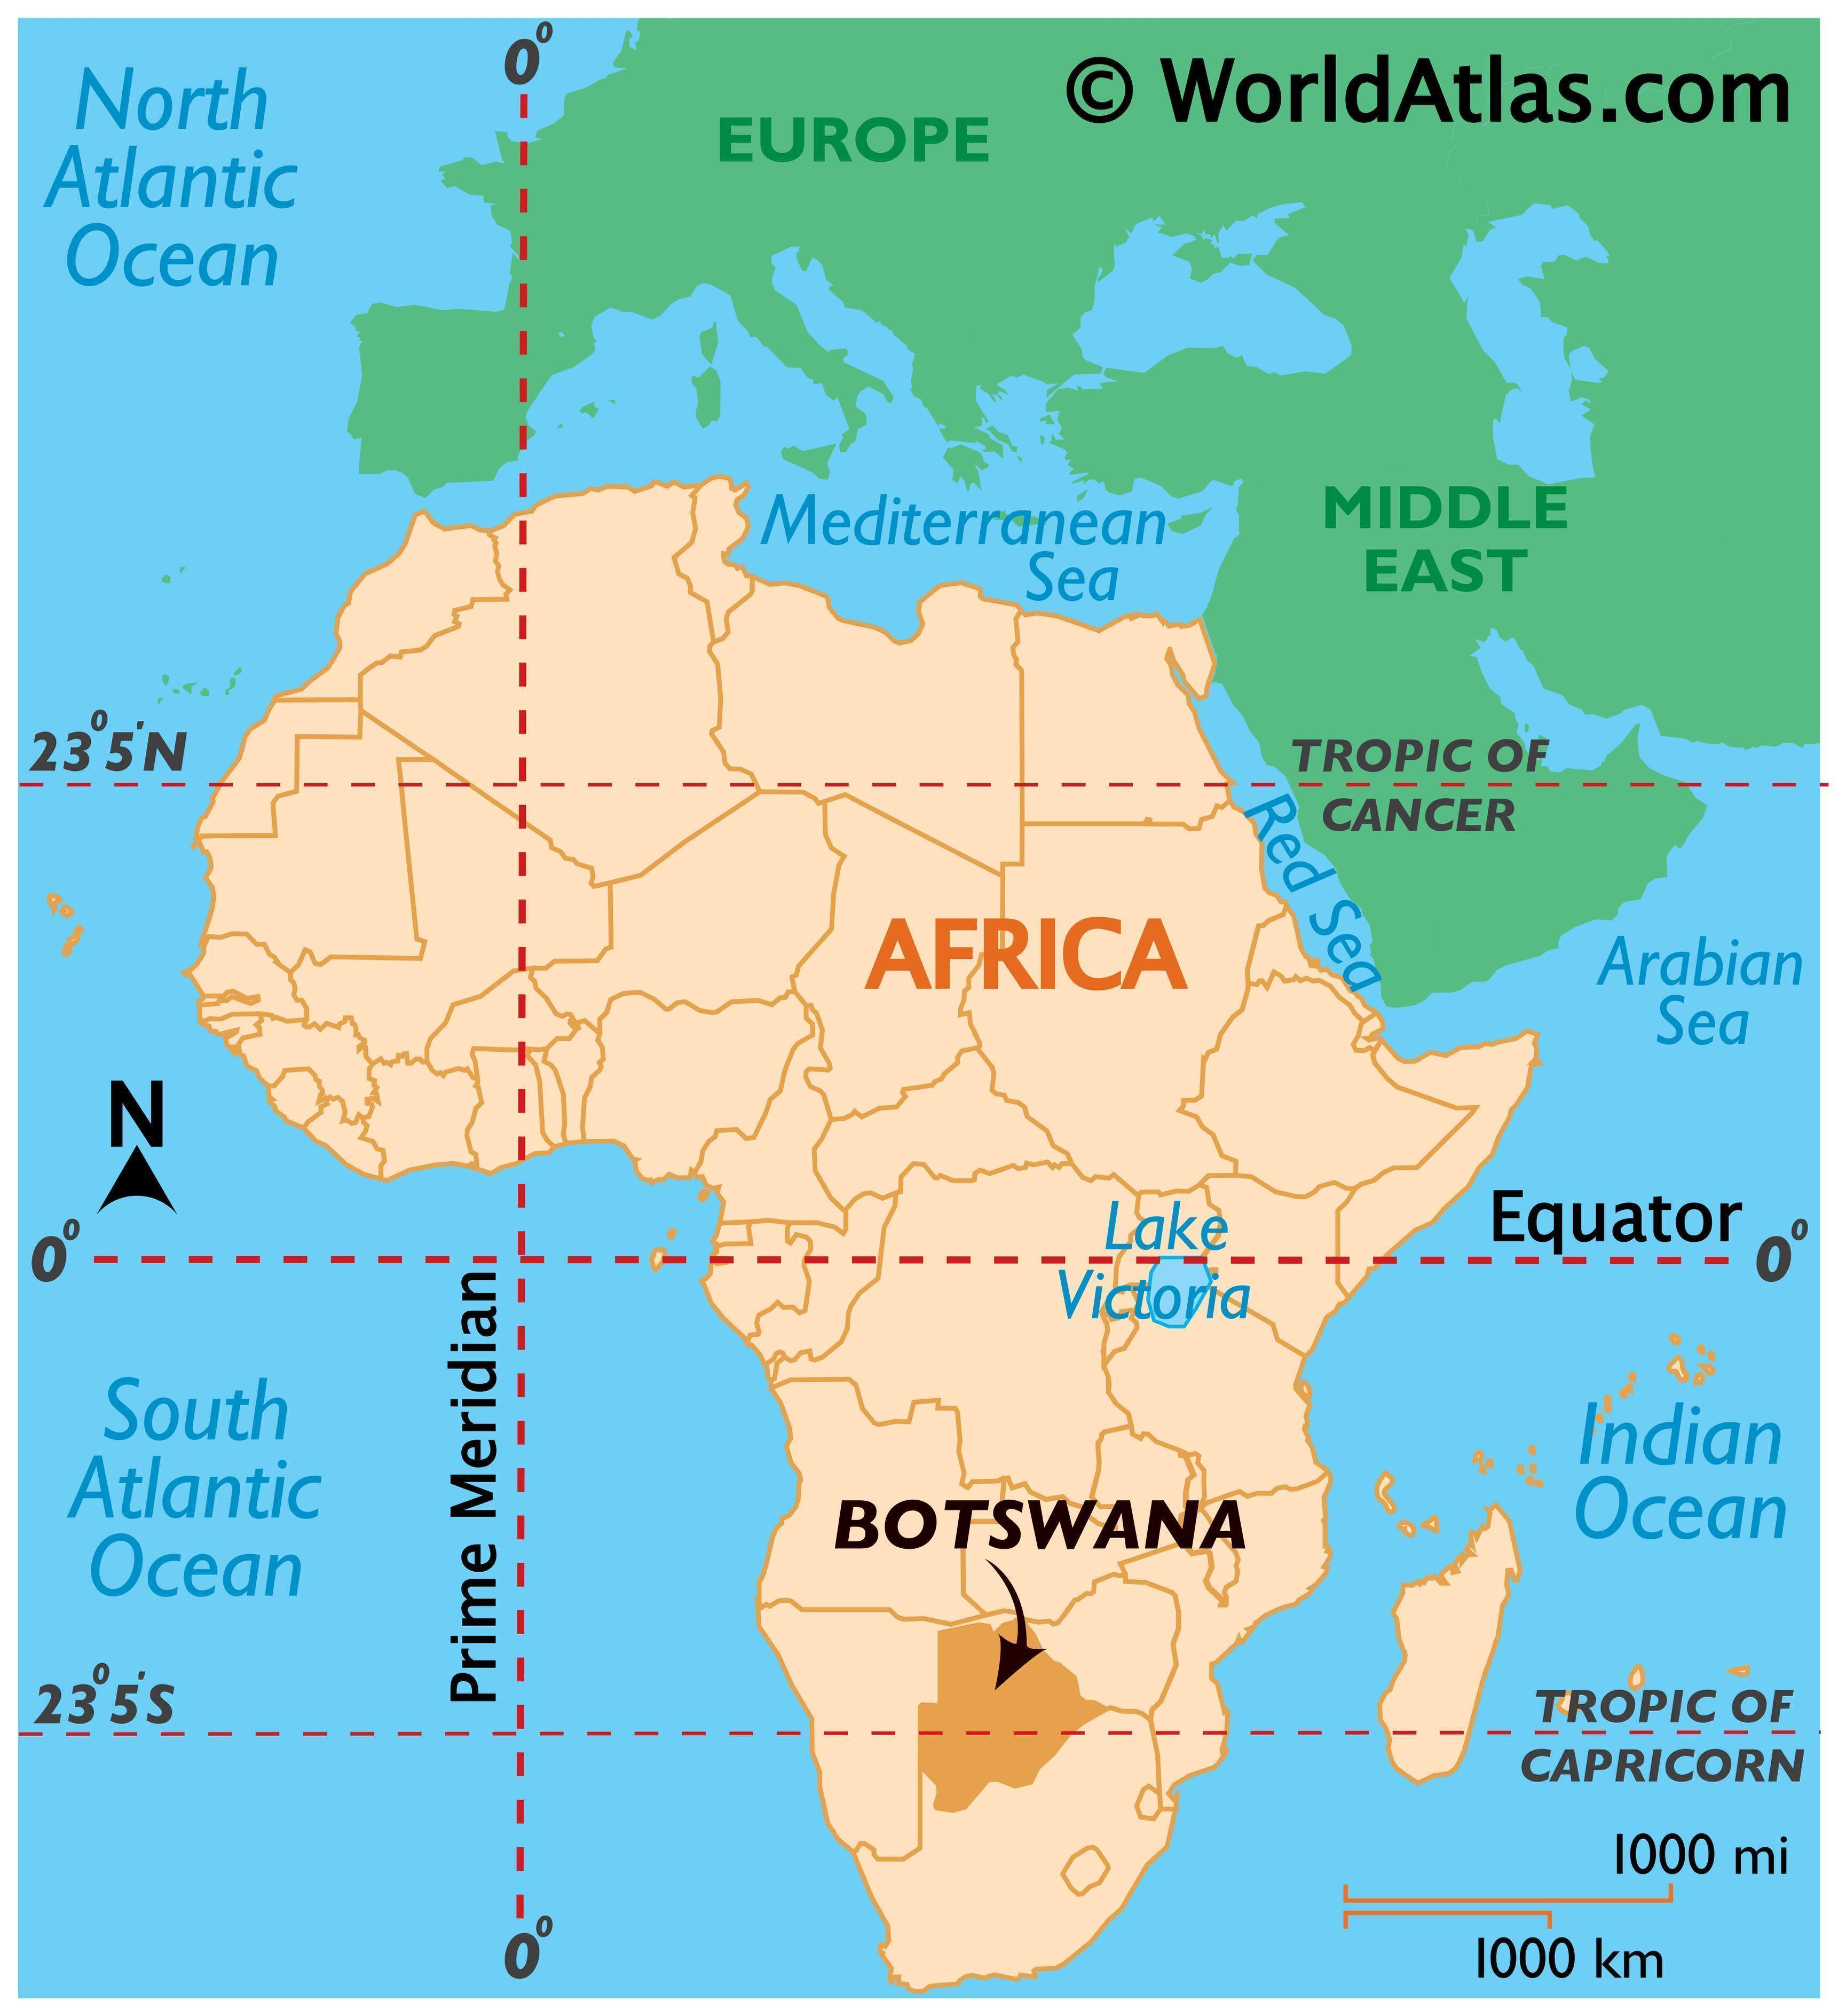 Map showing location of Botswana in the world.